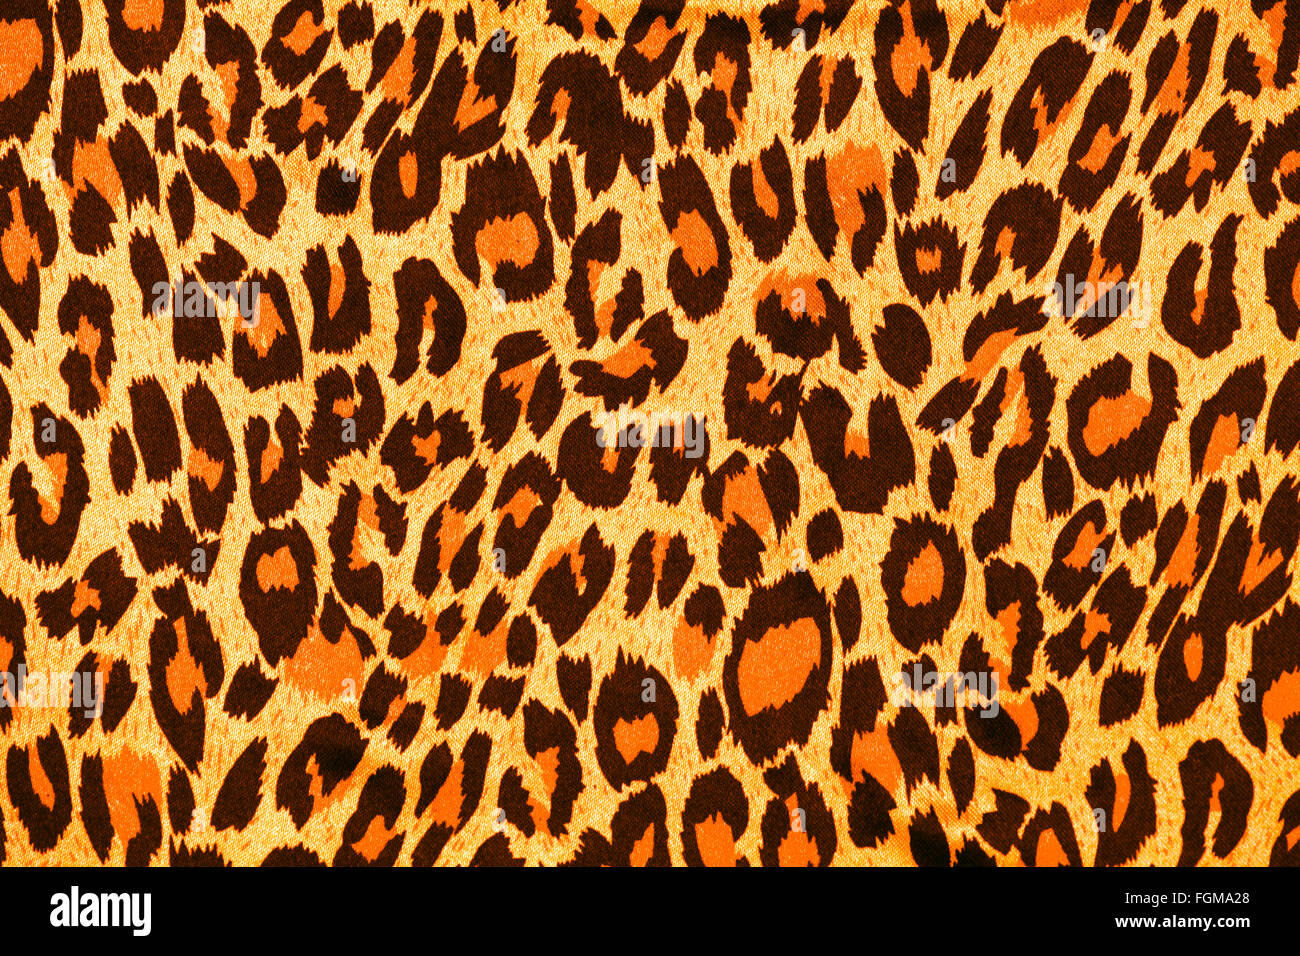 Leopard Stock Images, Royalty-Free Images &amp- Vectors | Shutterstock